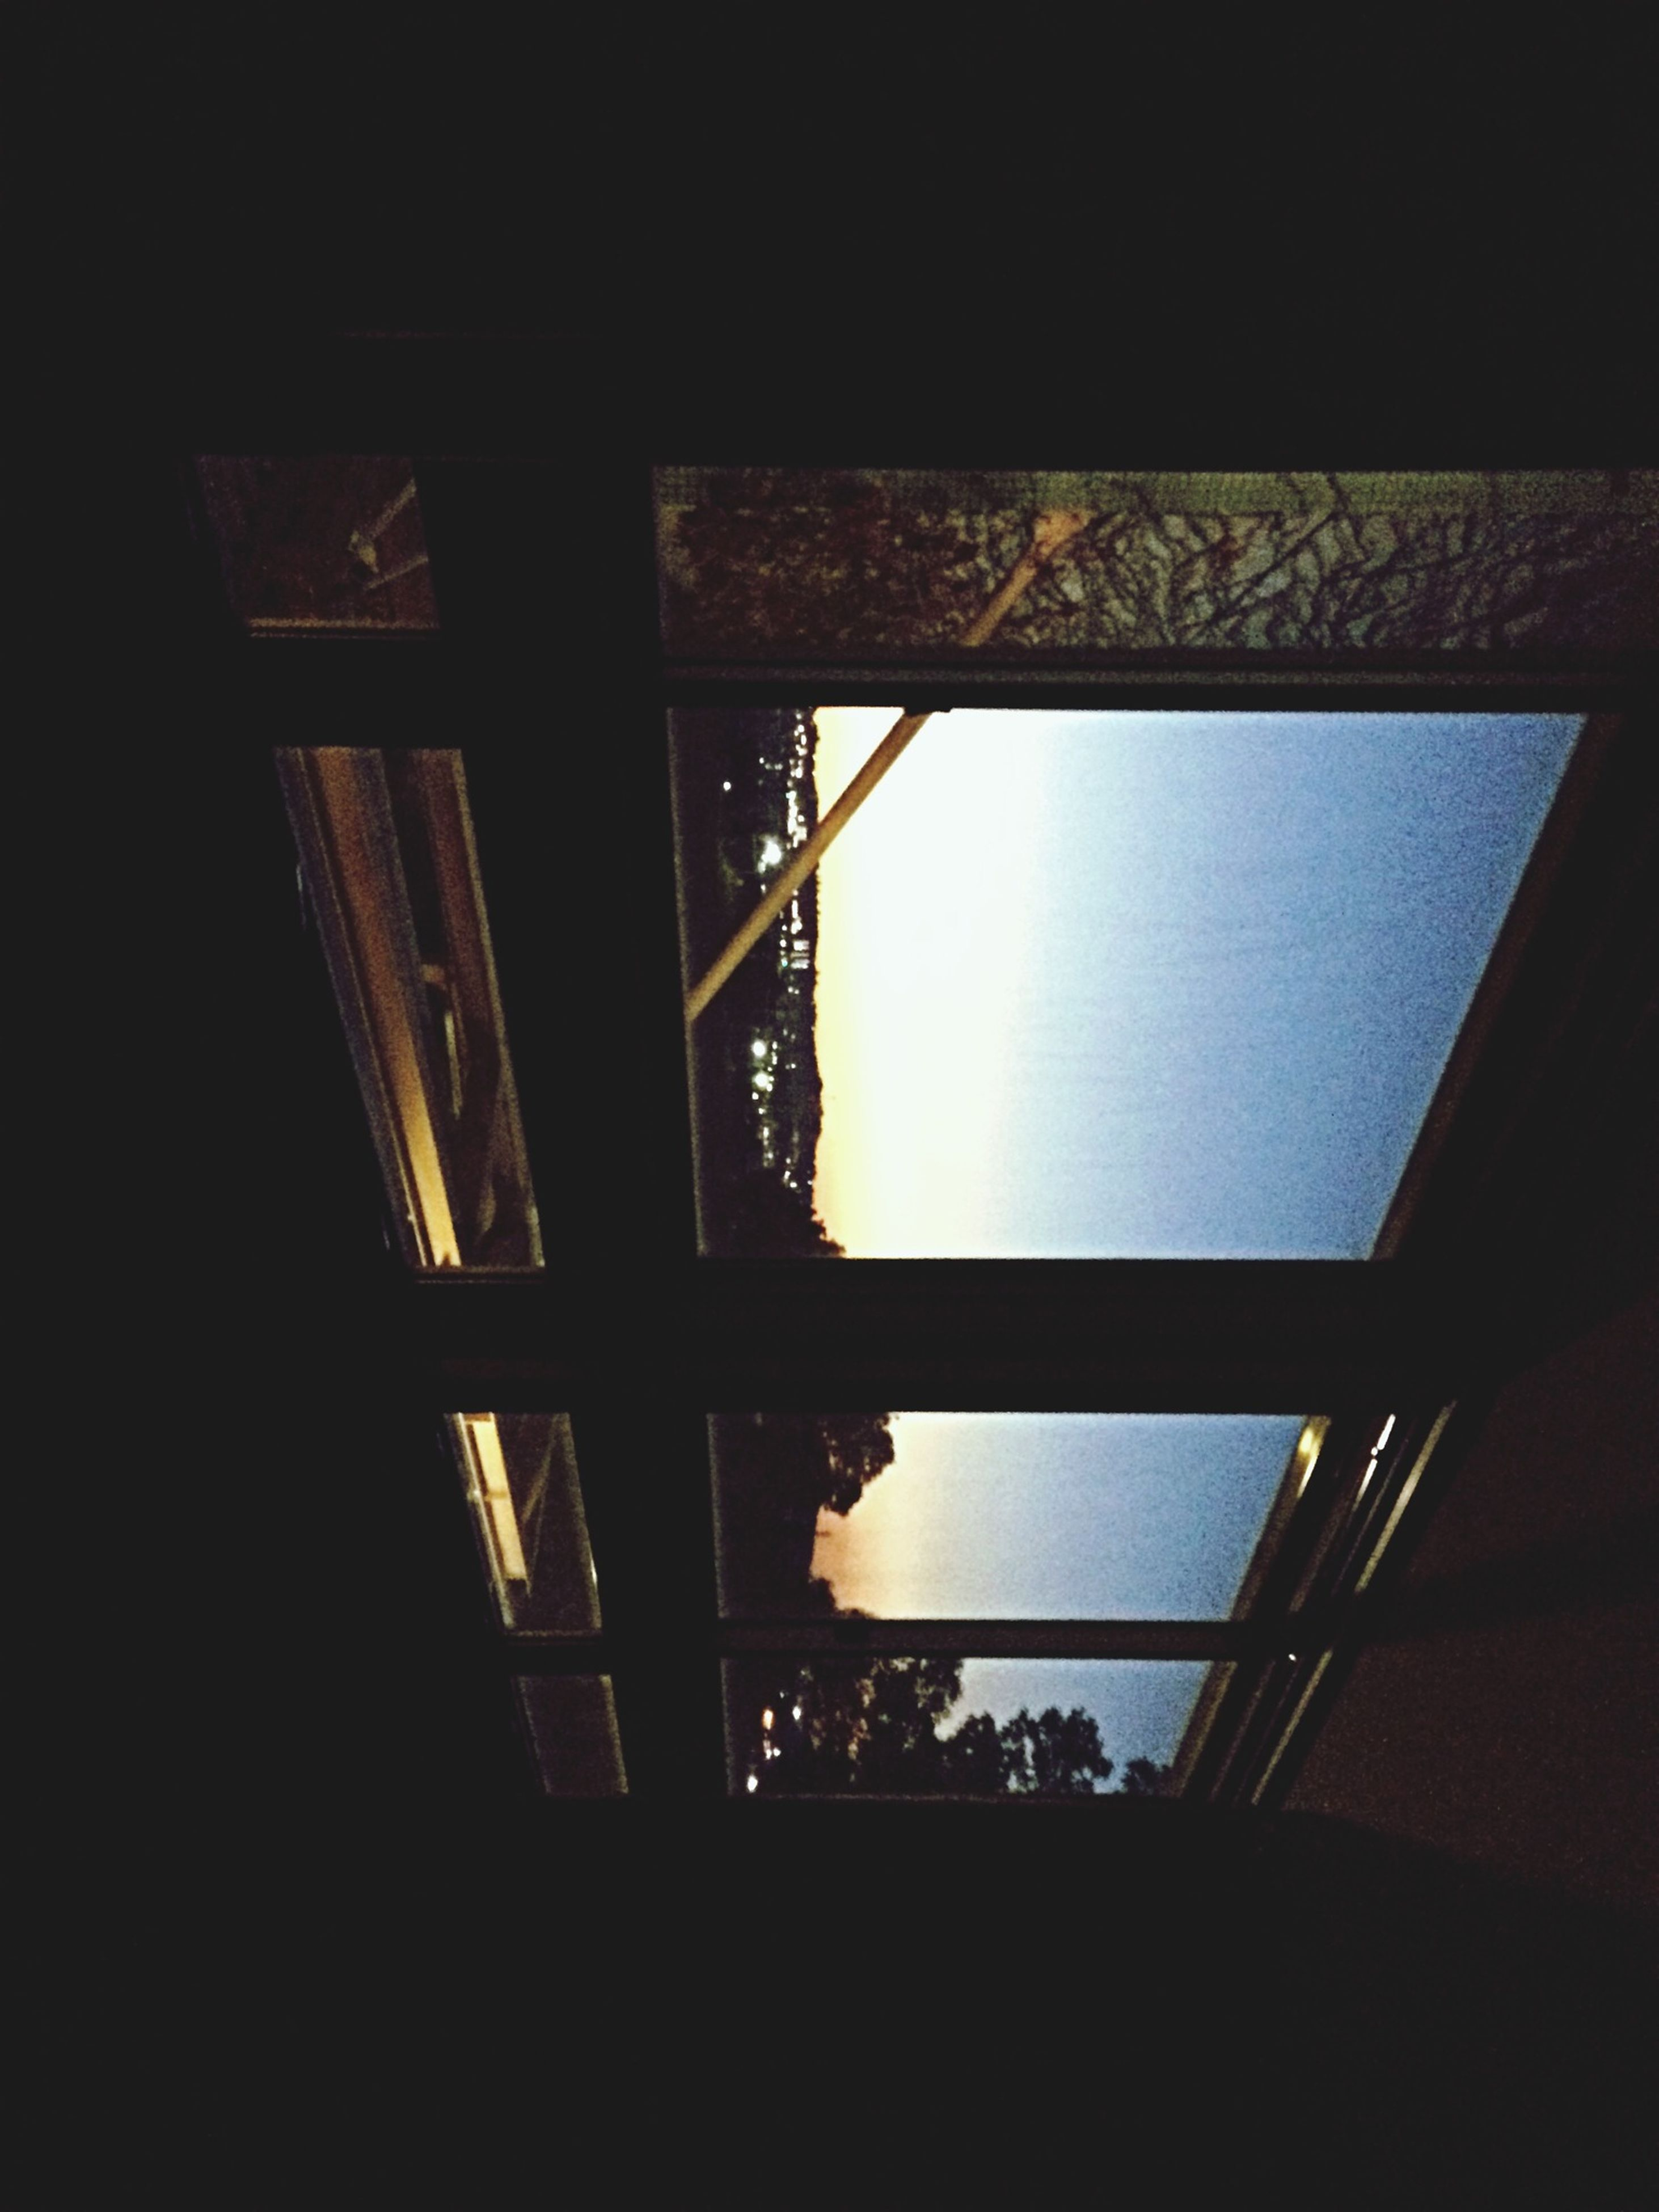 indoors, window, low angle view, built structure, glass - material, architecture, home interior, silhouette, transparent, dark, house, ceiling, sunlight, no people, day, copy space, sky, window sill, clear sky, wall